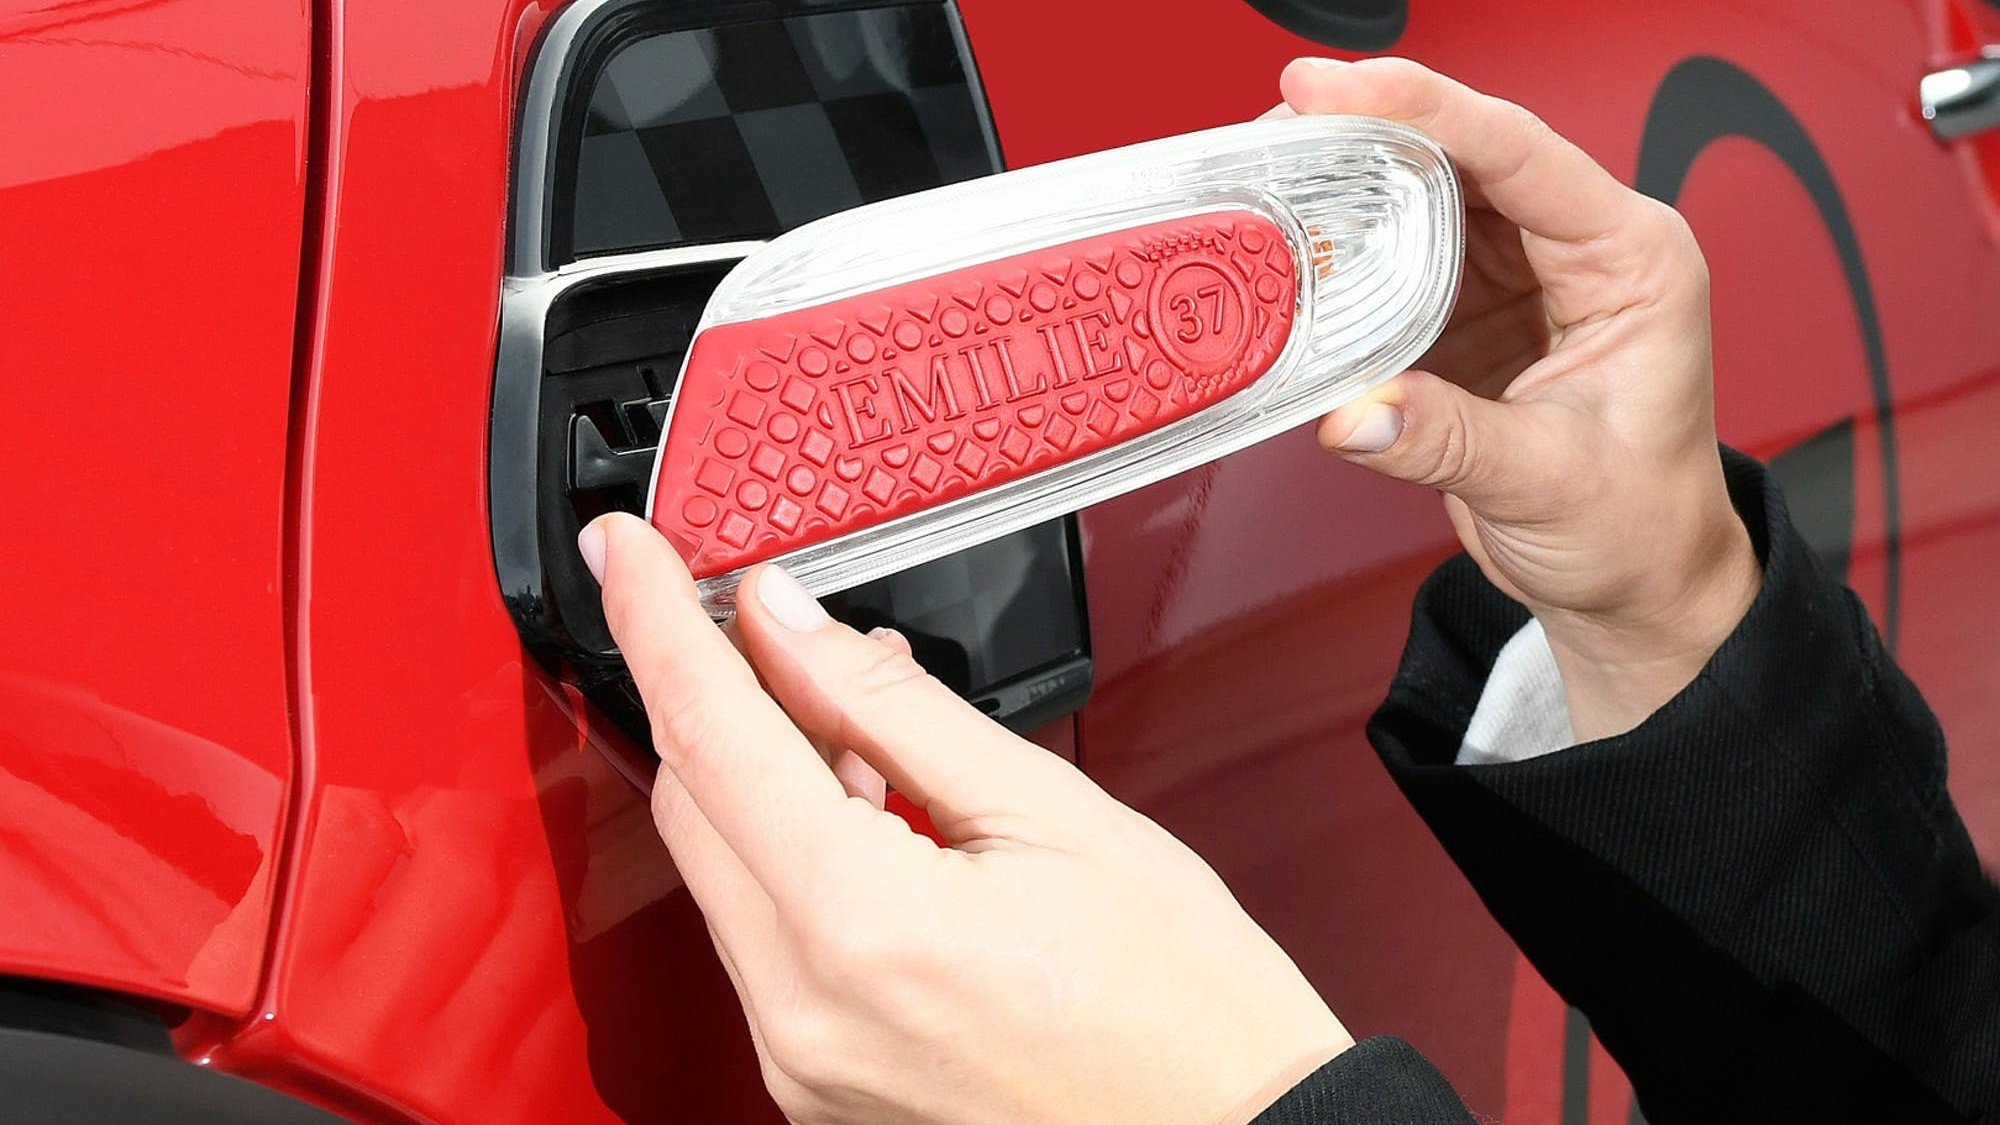 MINI Launches 3D Printing Service to Offer Customized Car Accessories | All3DP